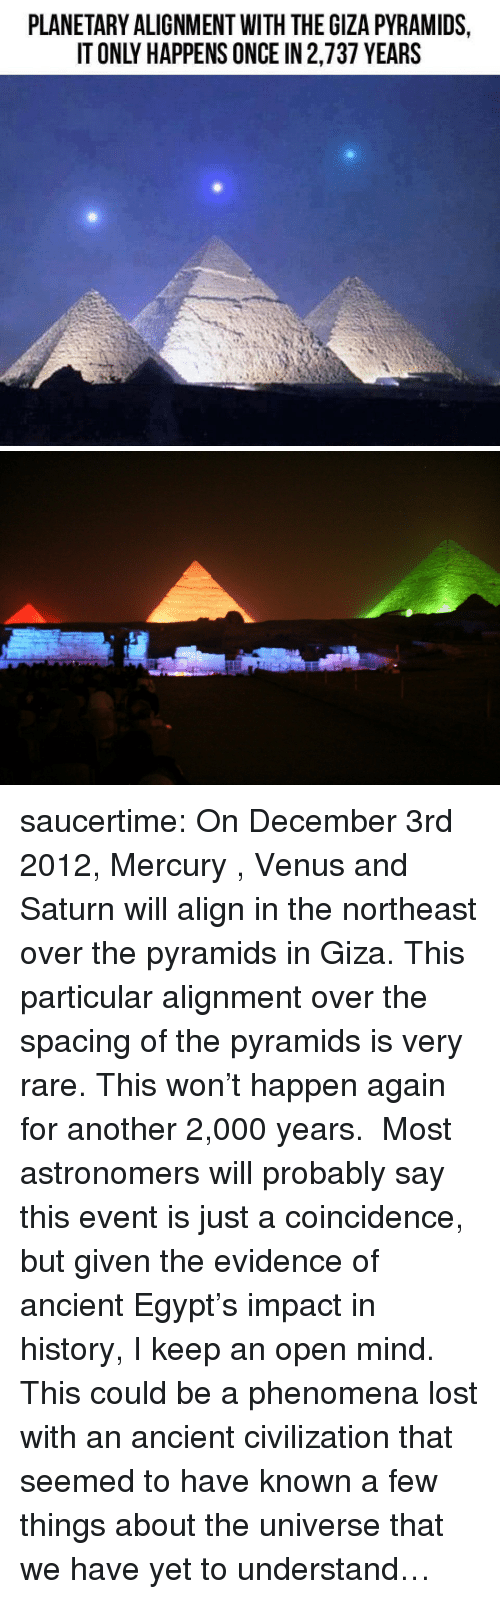 Target, Tumblr, and Lost: PLANETARY ALIGNMENT WITH THE GIZA PYRAMIDS,  IT ONLY HAPPENS ONCE IN 2,737 YEARS saucertime:  On December 3rd 2012, Mercury , Venus and Saturn will align in the northeast over the pyramids in Giza. This particular alignment over the spacing of the pyramids is very rare. This won't happen again for another 2,000 years. Most astronomers will probably say this event is just a coincidence, but given the evidence of ancient Egypt's impact in history, I keep an open mind. This could be a phenomena lost with an ancient civilization that seemed to have known a few things about the universe that we have yet to understand…